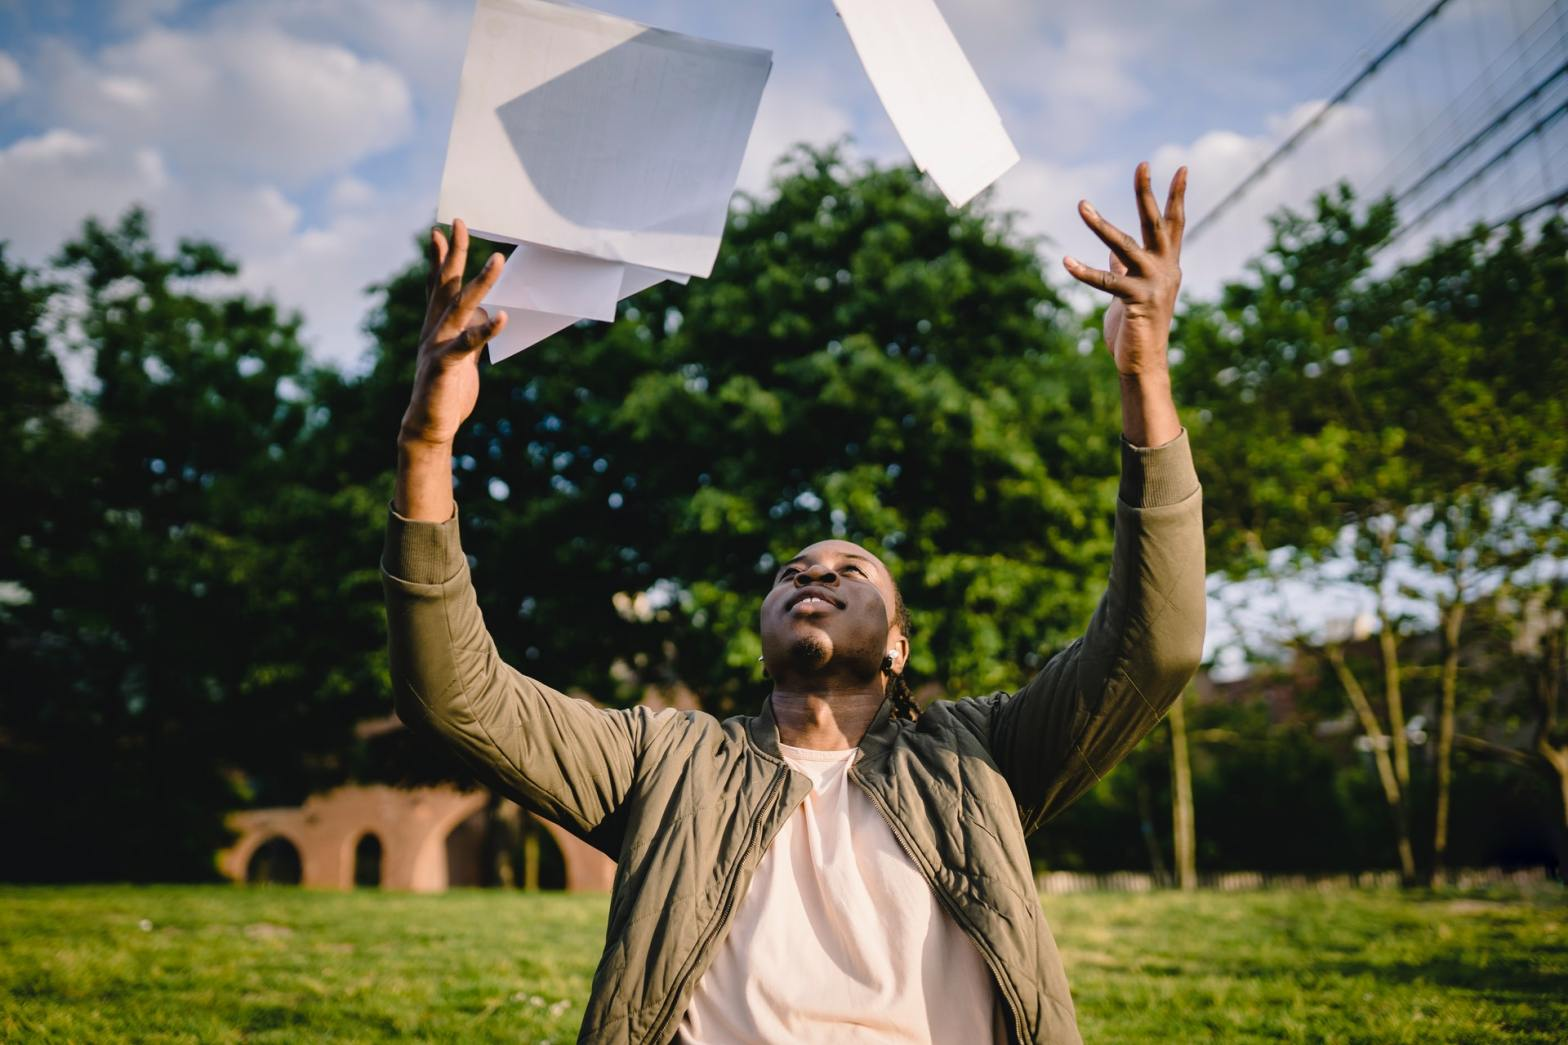 man throwing up papers in joy on an empty plot of land